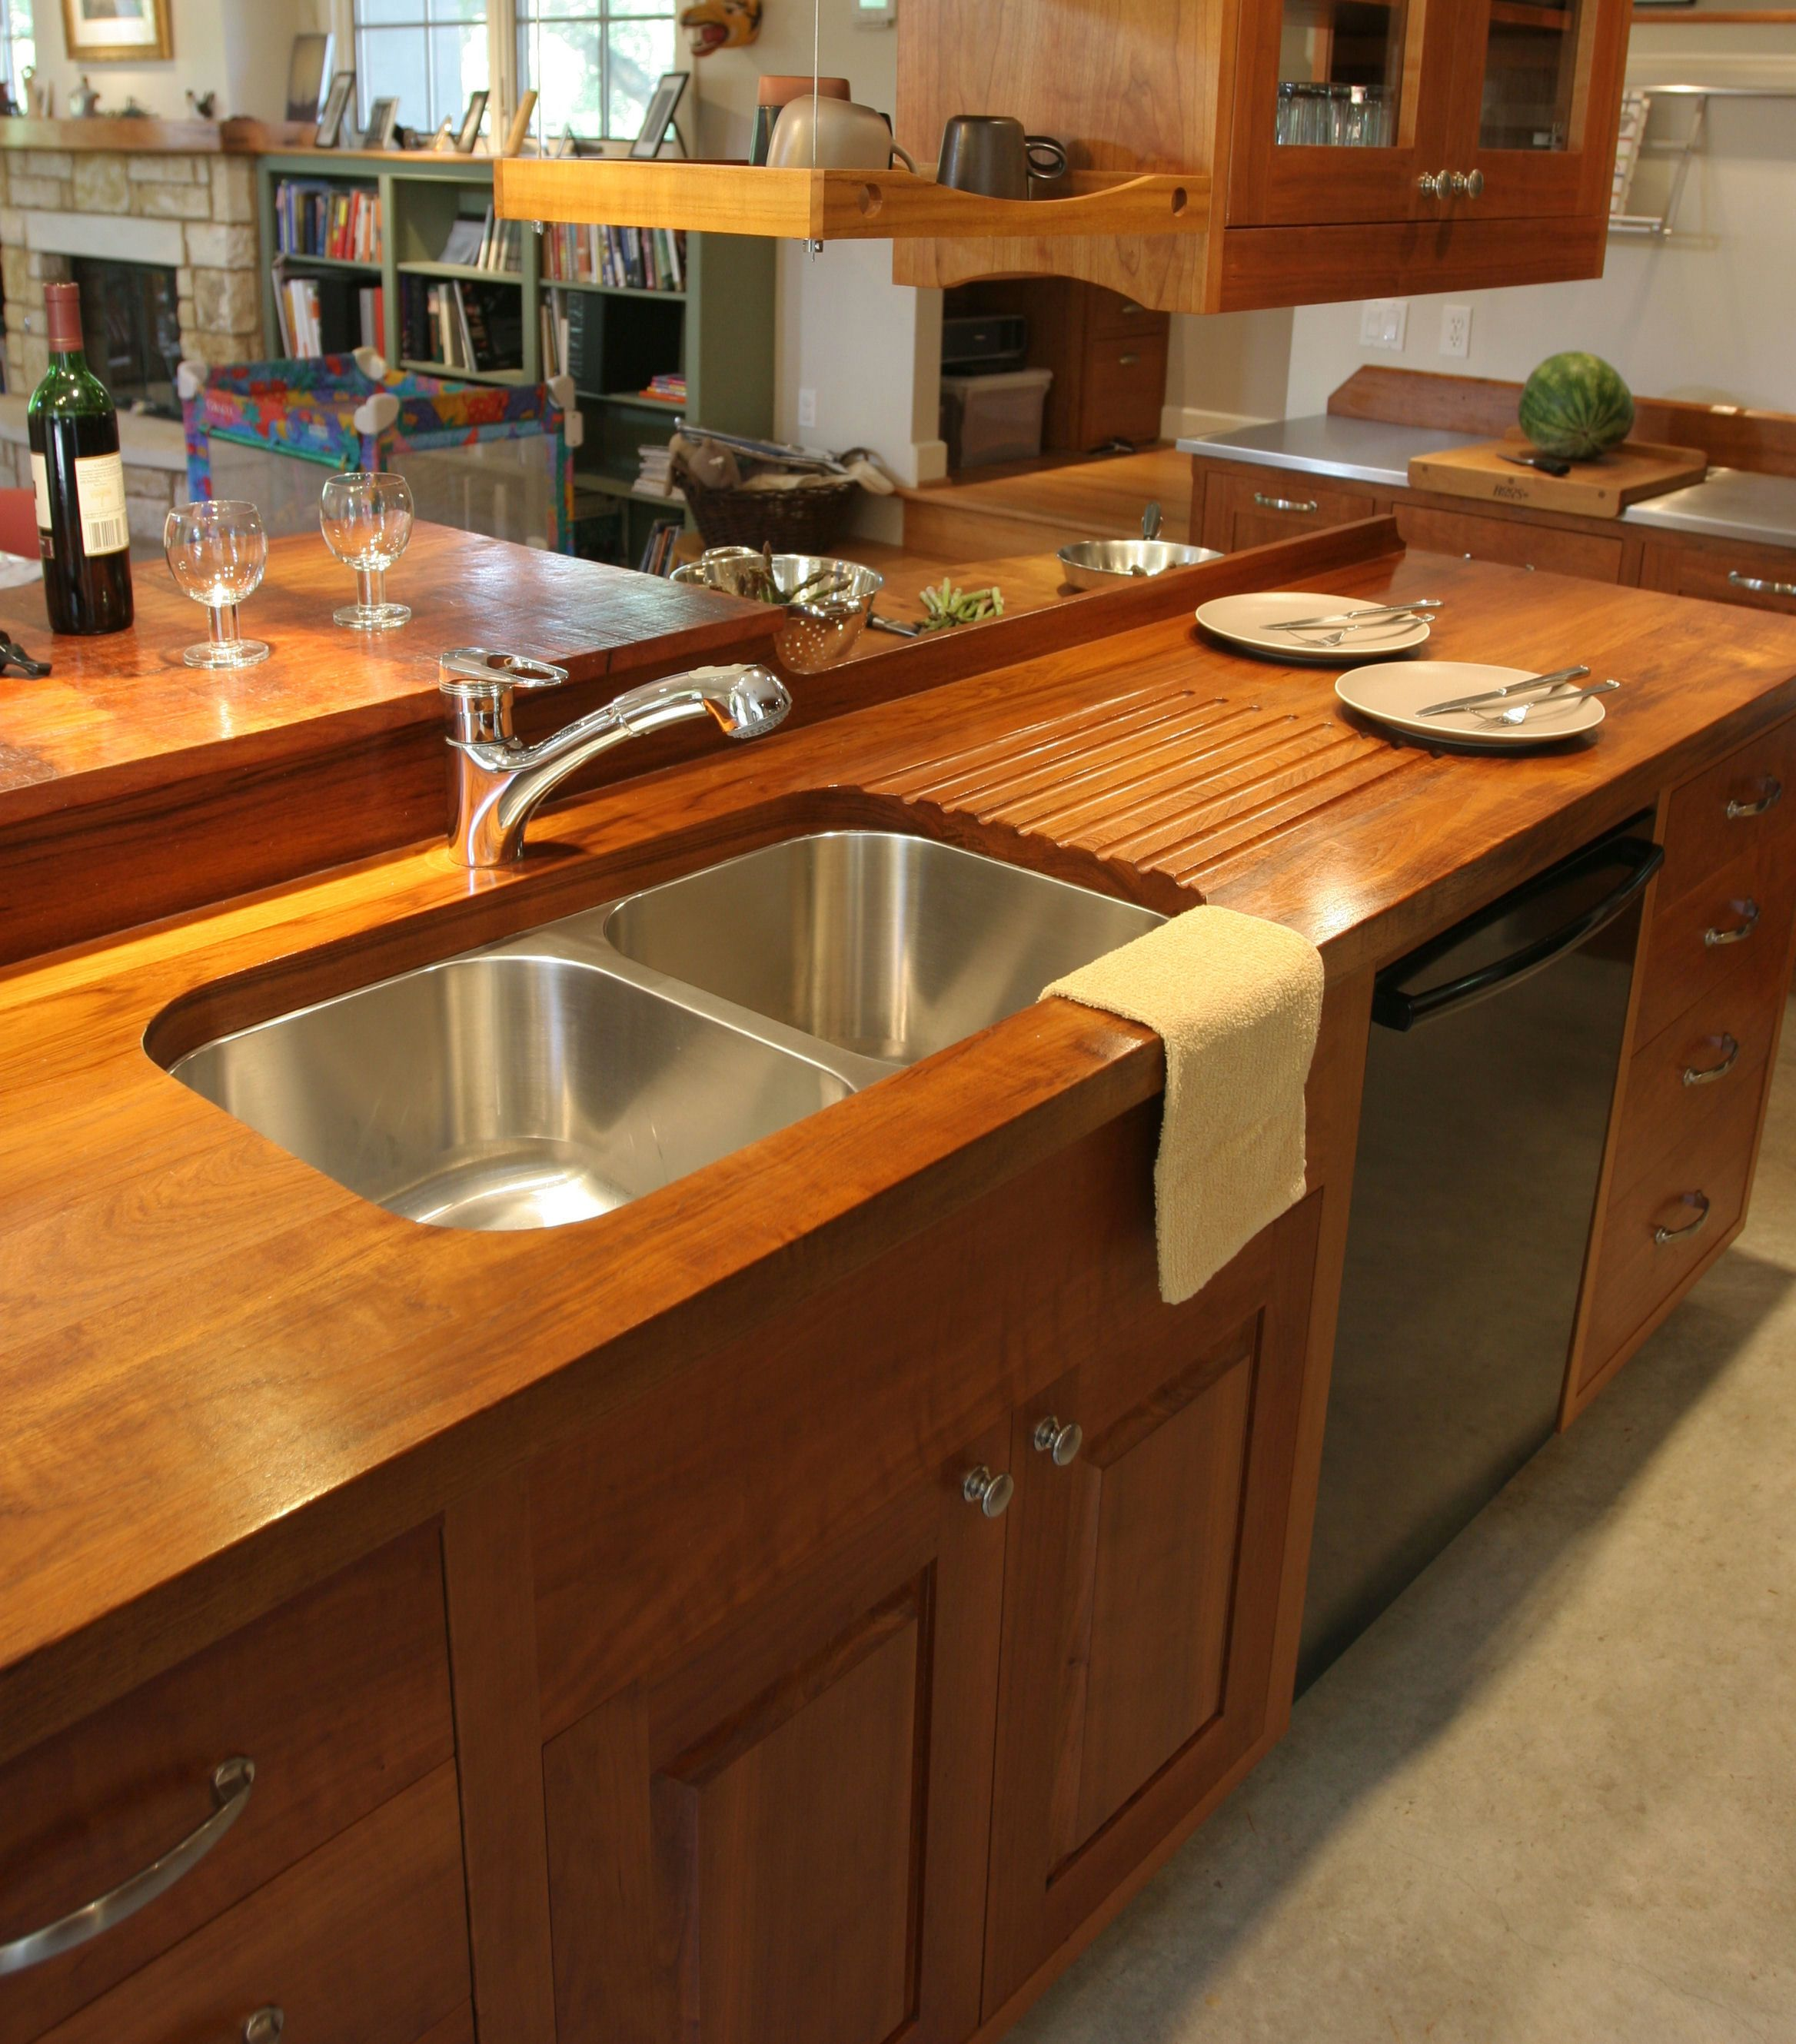 Best Wood For Butcher Block Counters: Teak Wood Countertop Photo Gallery, By DeVos Custom